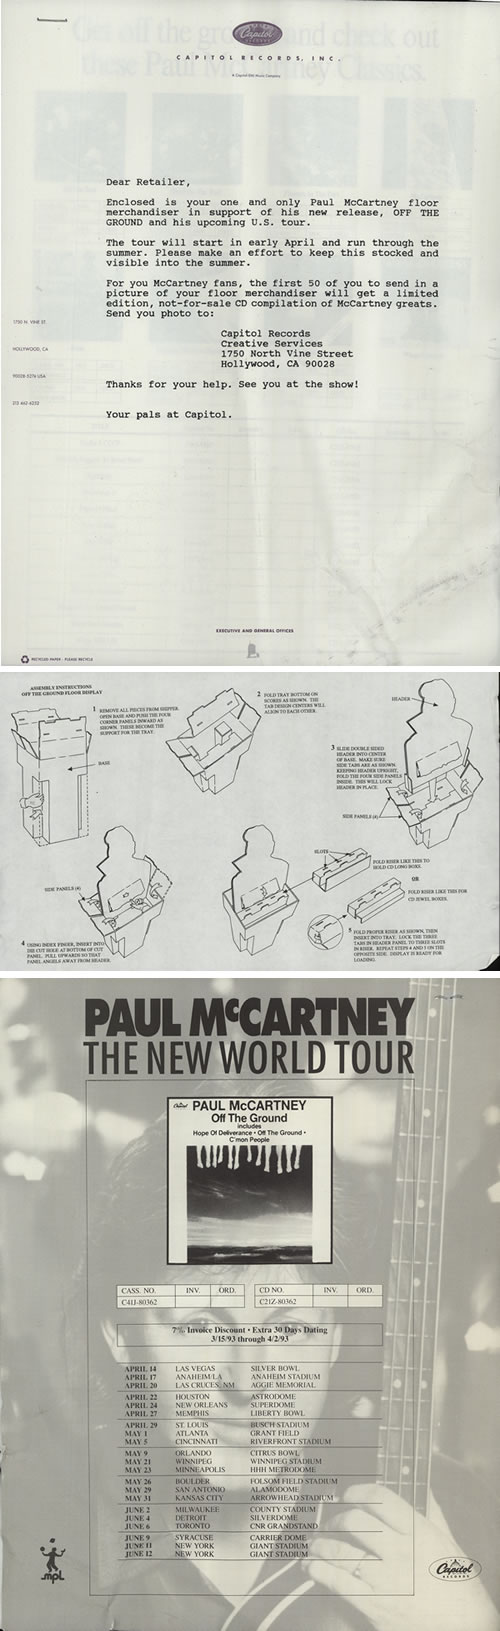 paul mccartney and wings off the ground floor display us promo